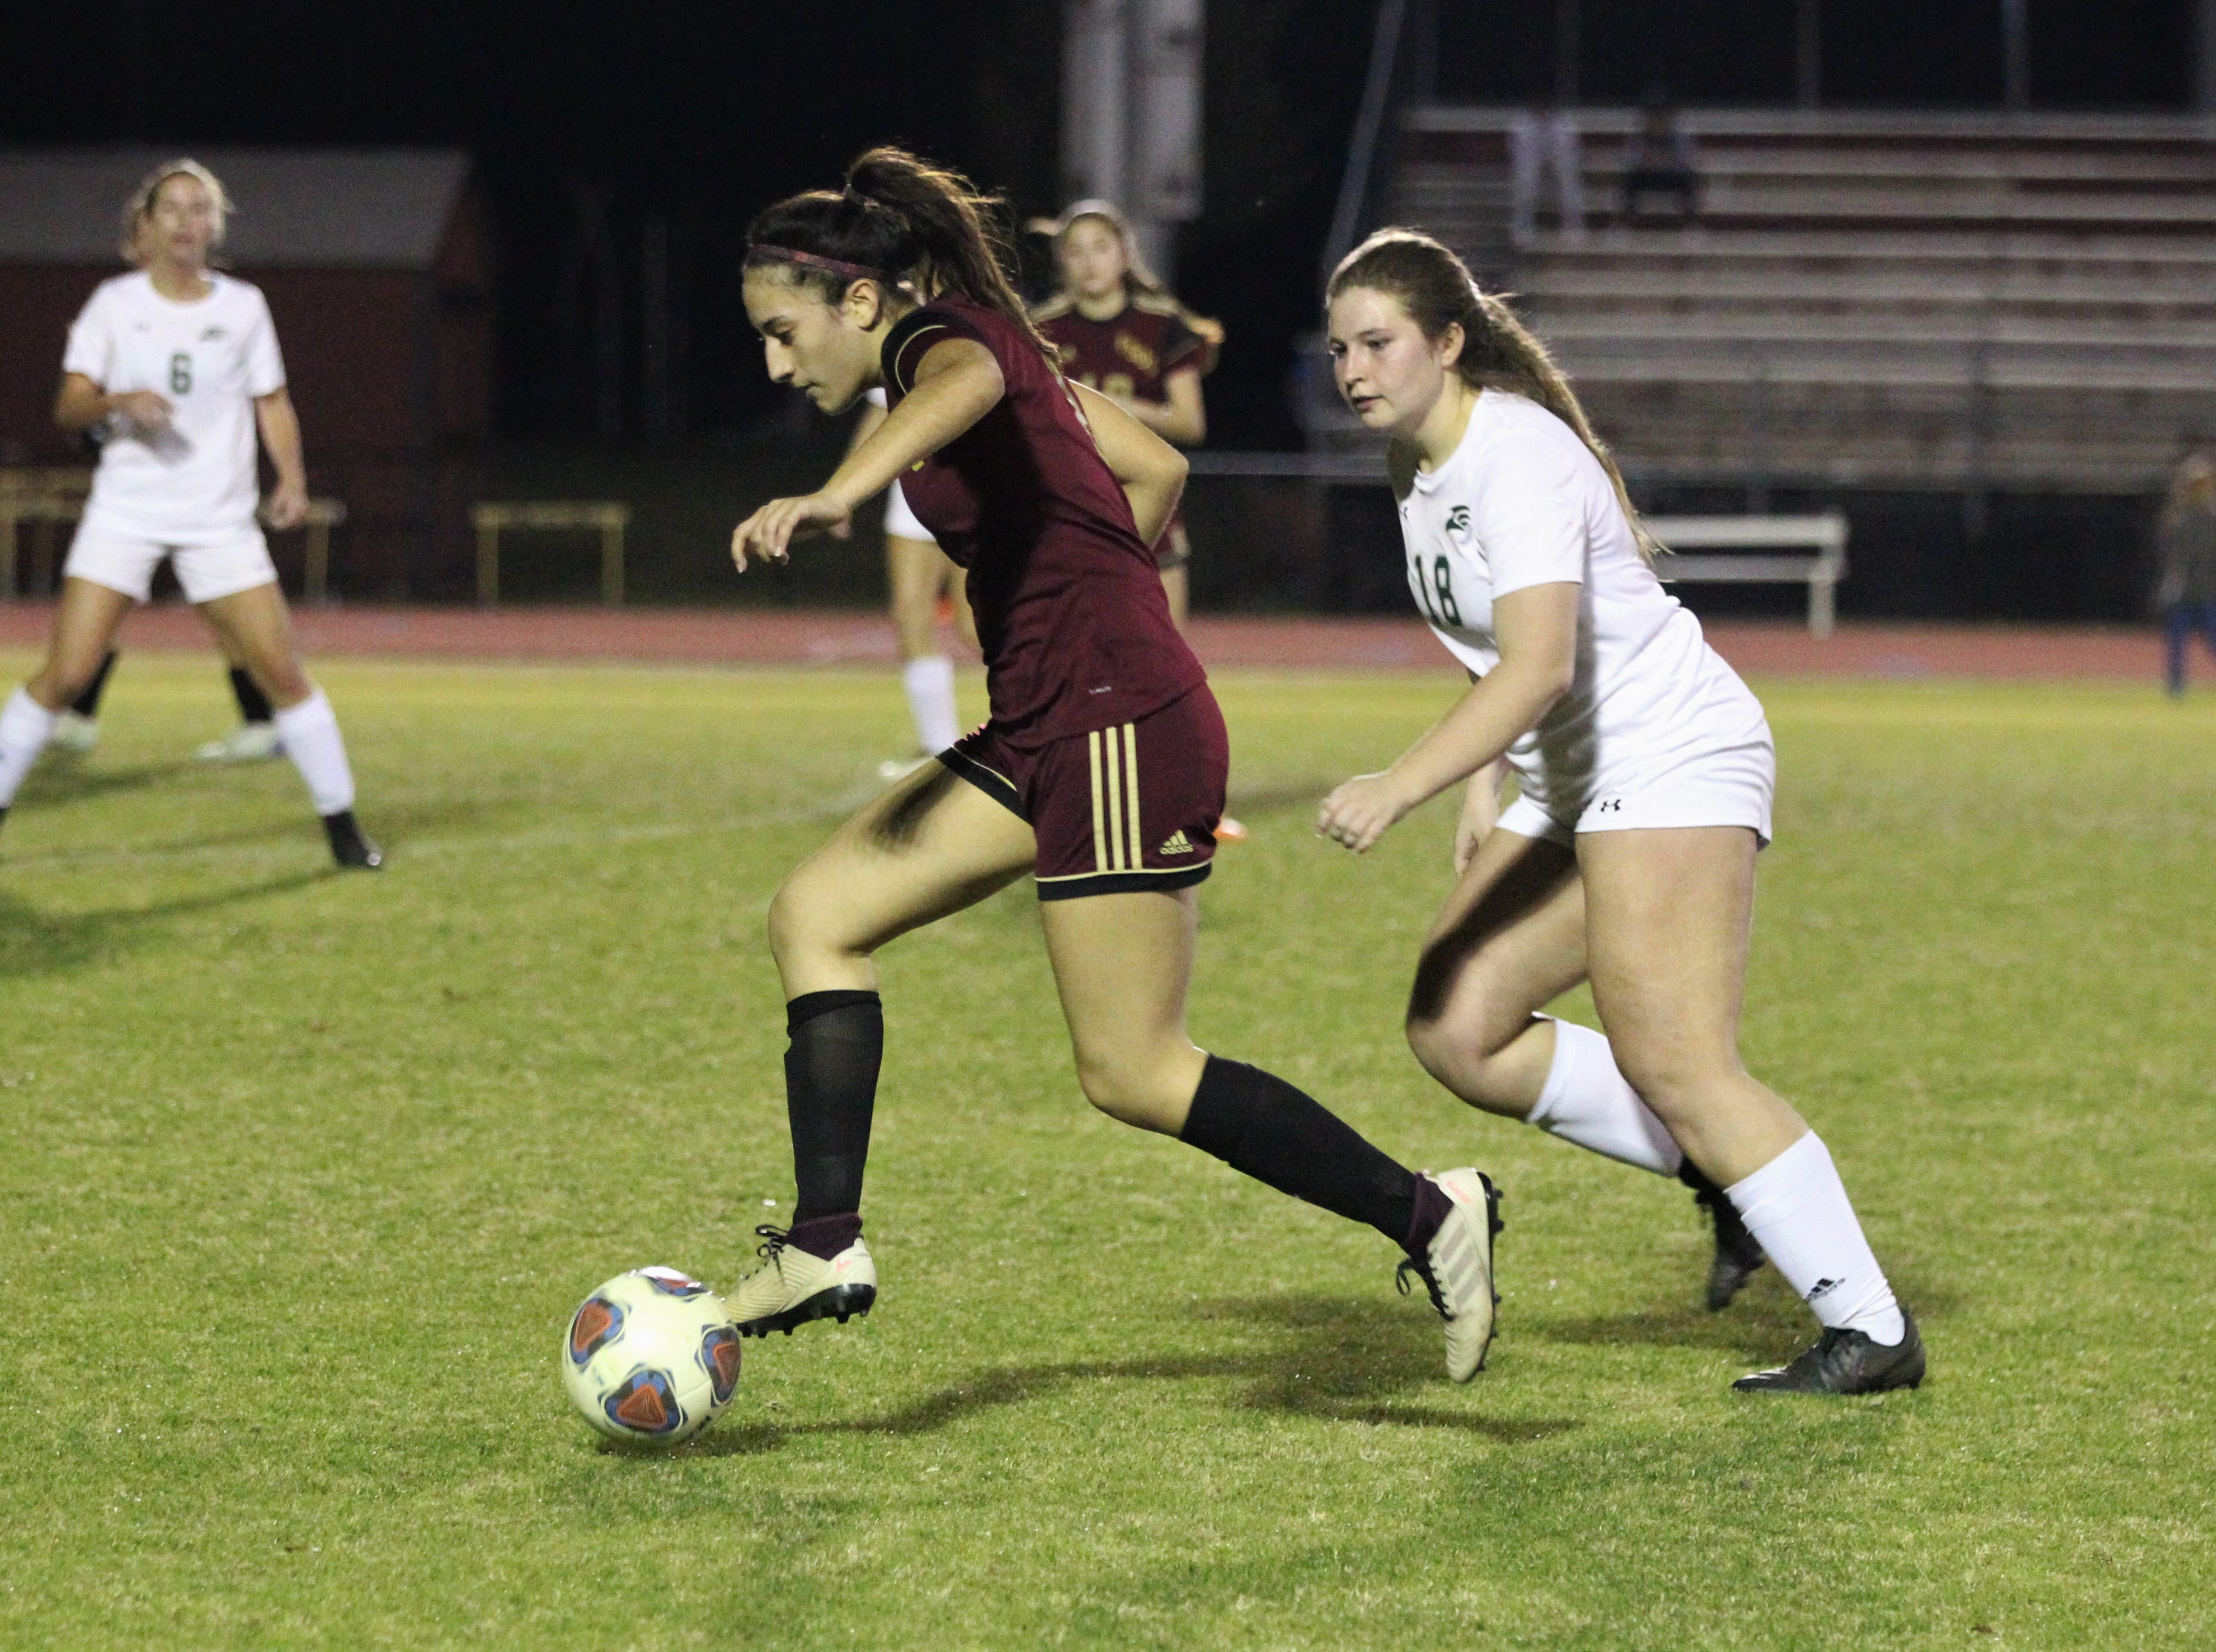 Florida High's Lily Quijada dribbles through the midfield as South Walton edged the Seminoles 5-4 in a penalty-kick shootout during a Region 1-2A semifinal on Feb. 8, 2019.